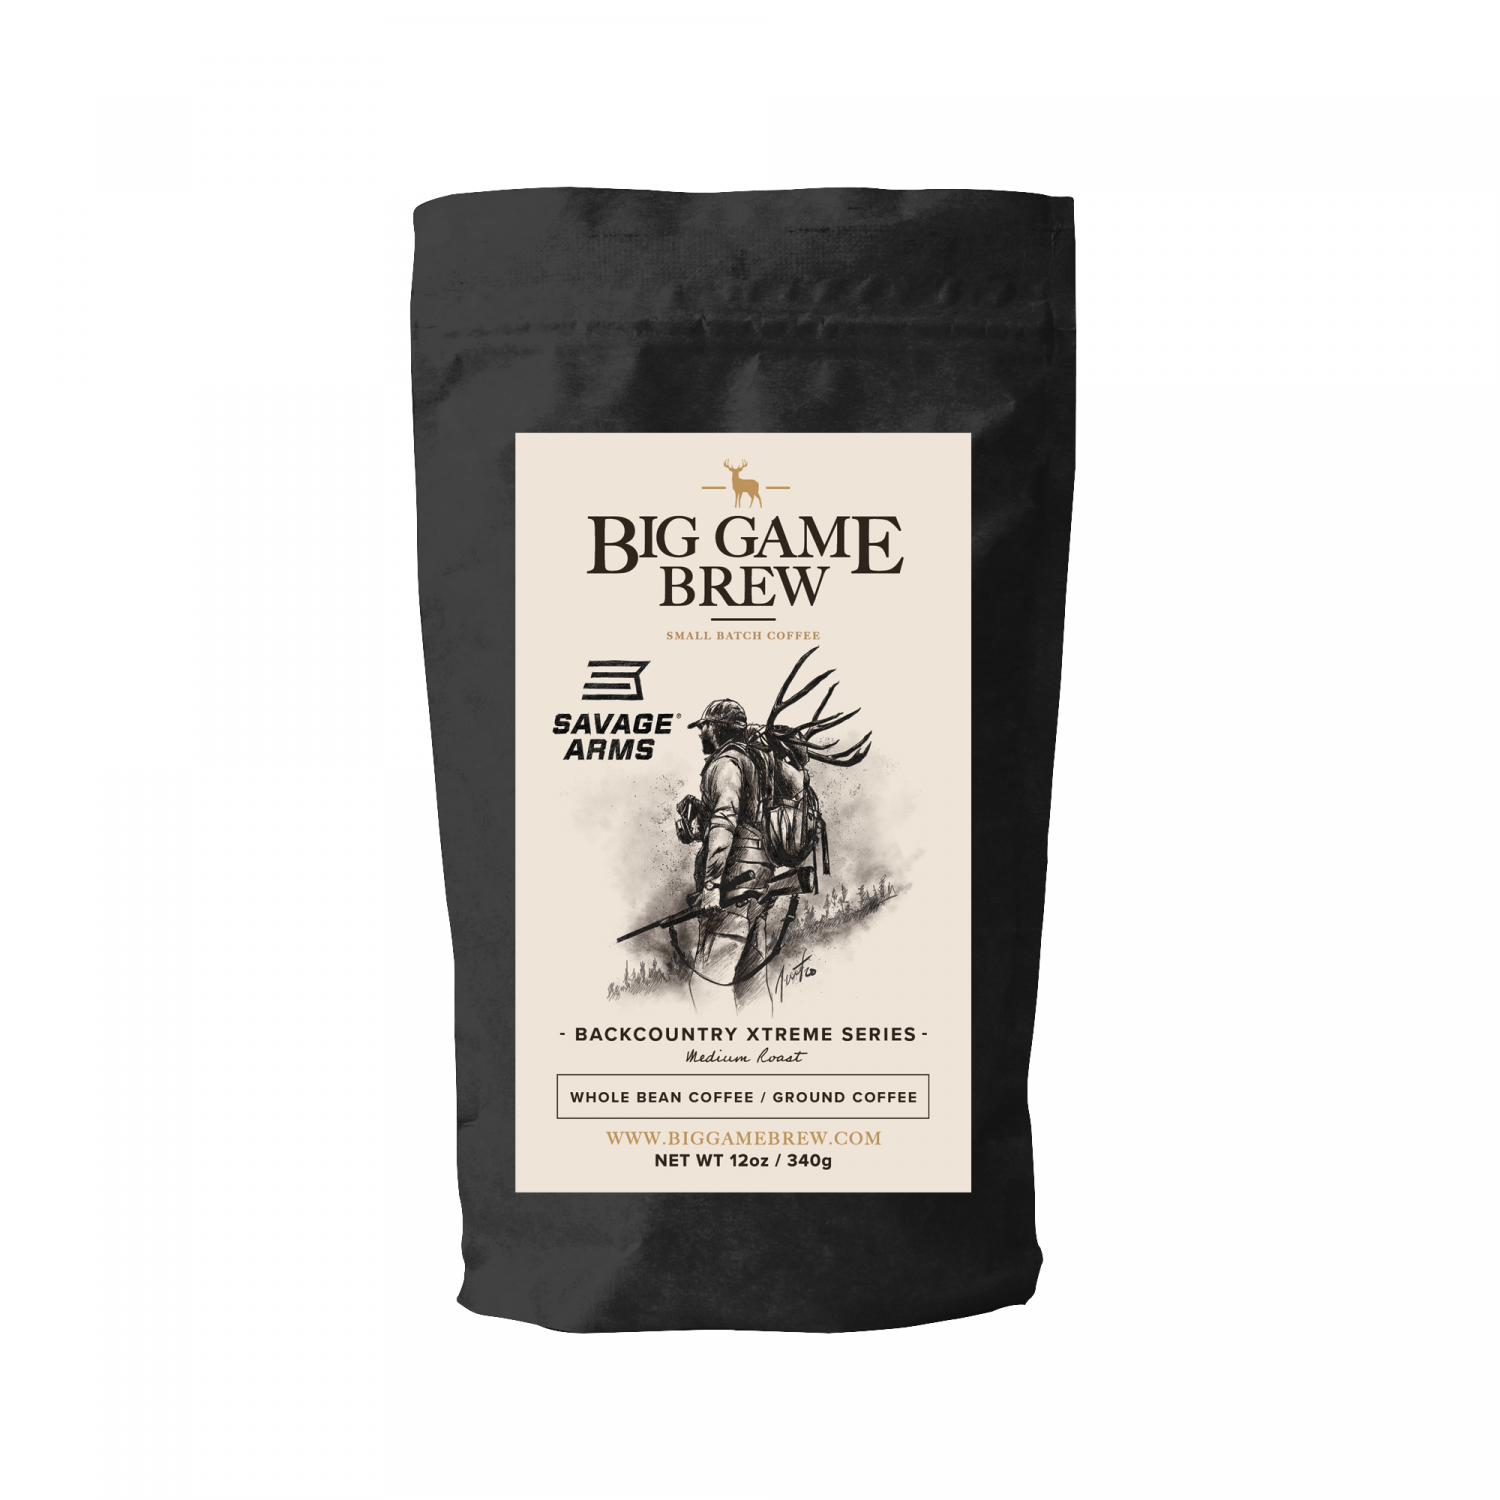 Big Game Brew partners with Savage Arms